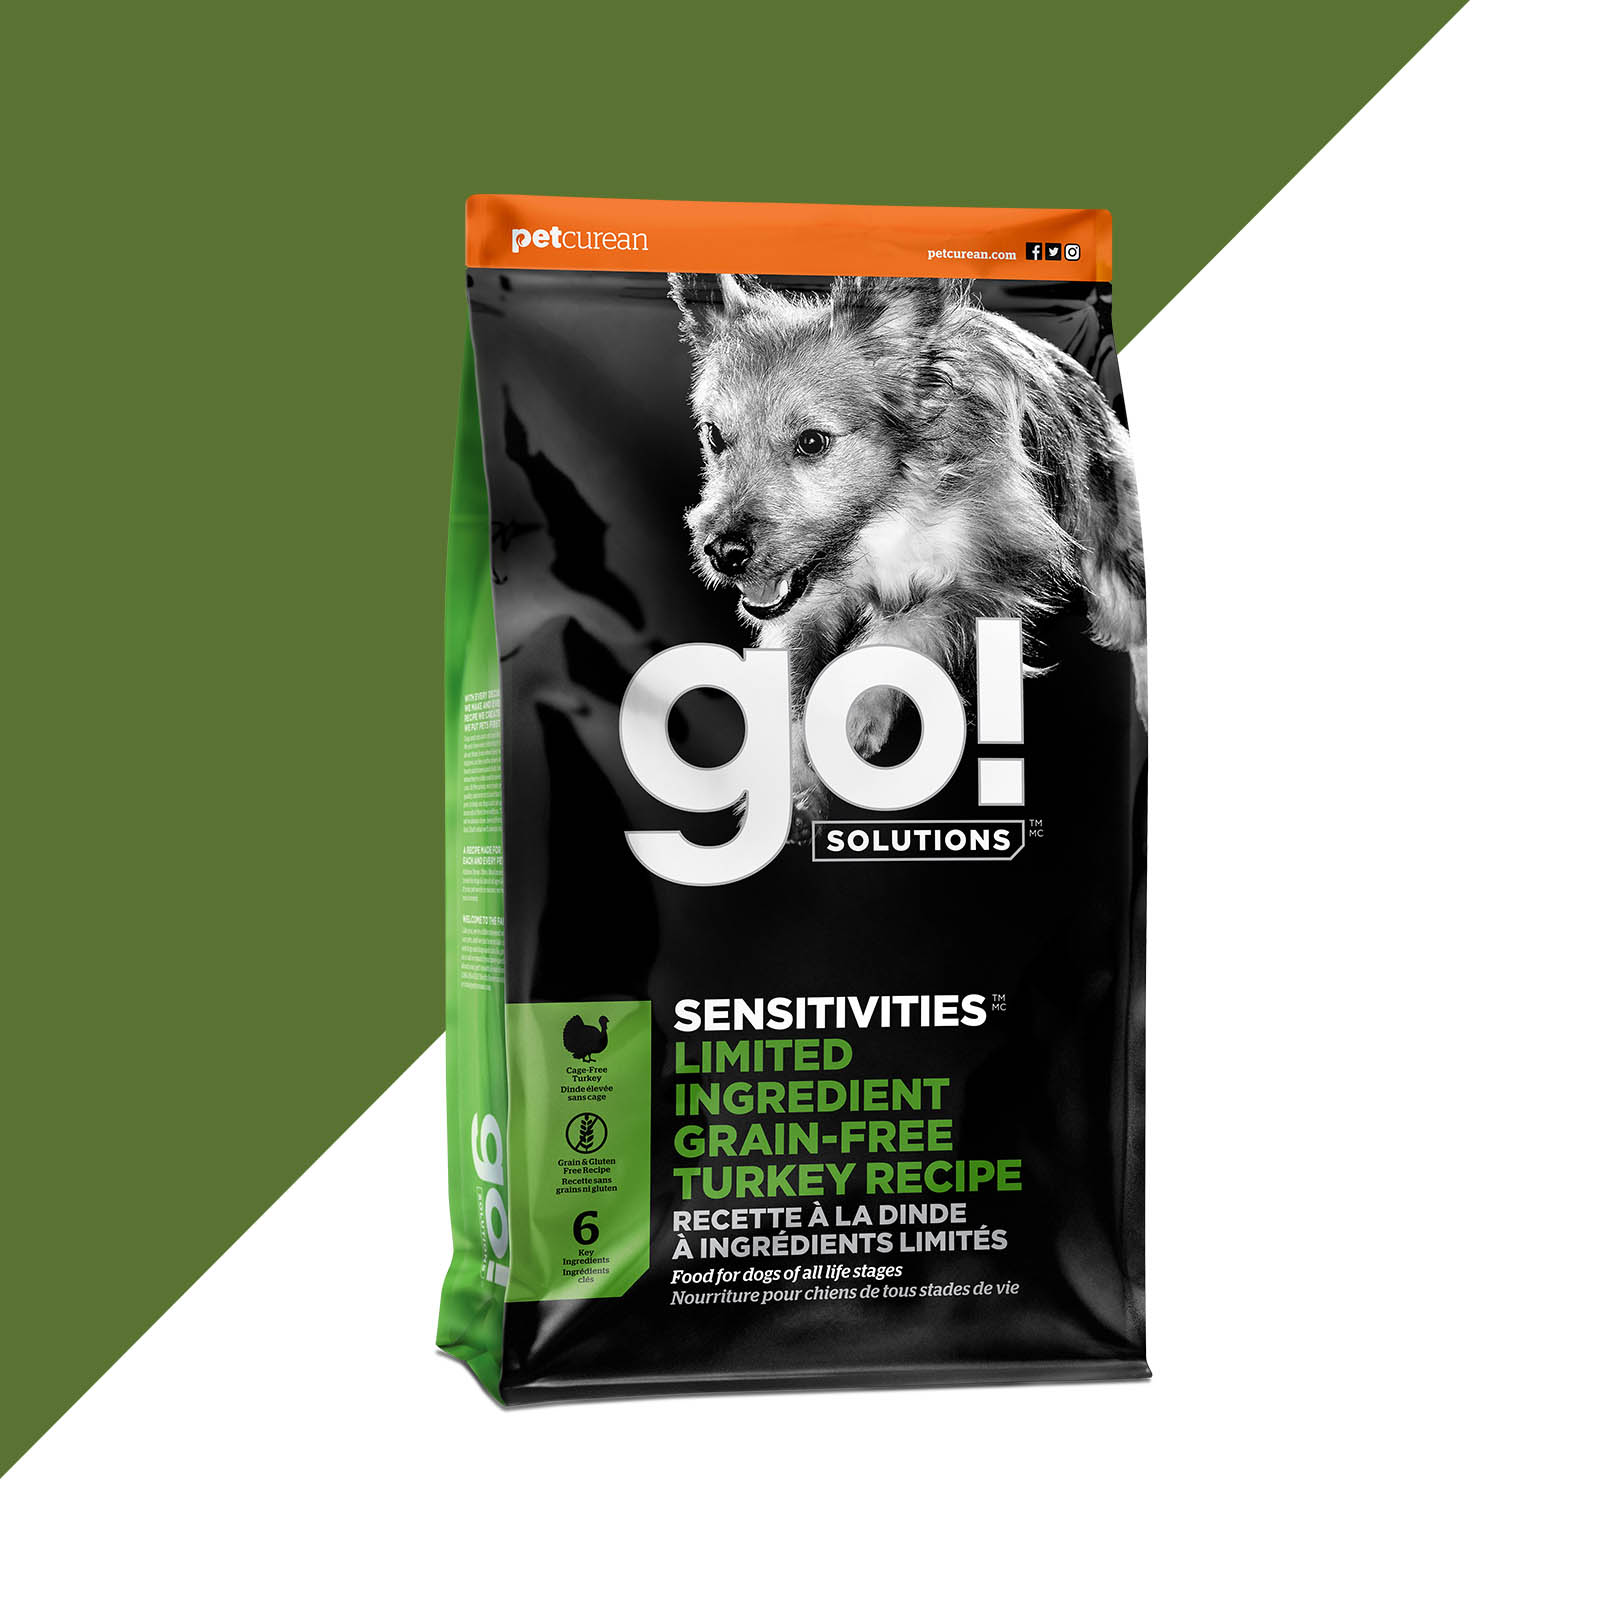 Go! Solutions Sensitivities Limited Ingredient Turkey Grain-Free Dry Dog Food Image